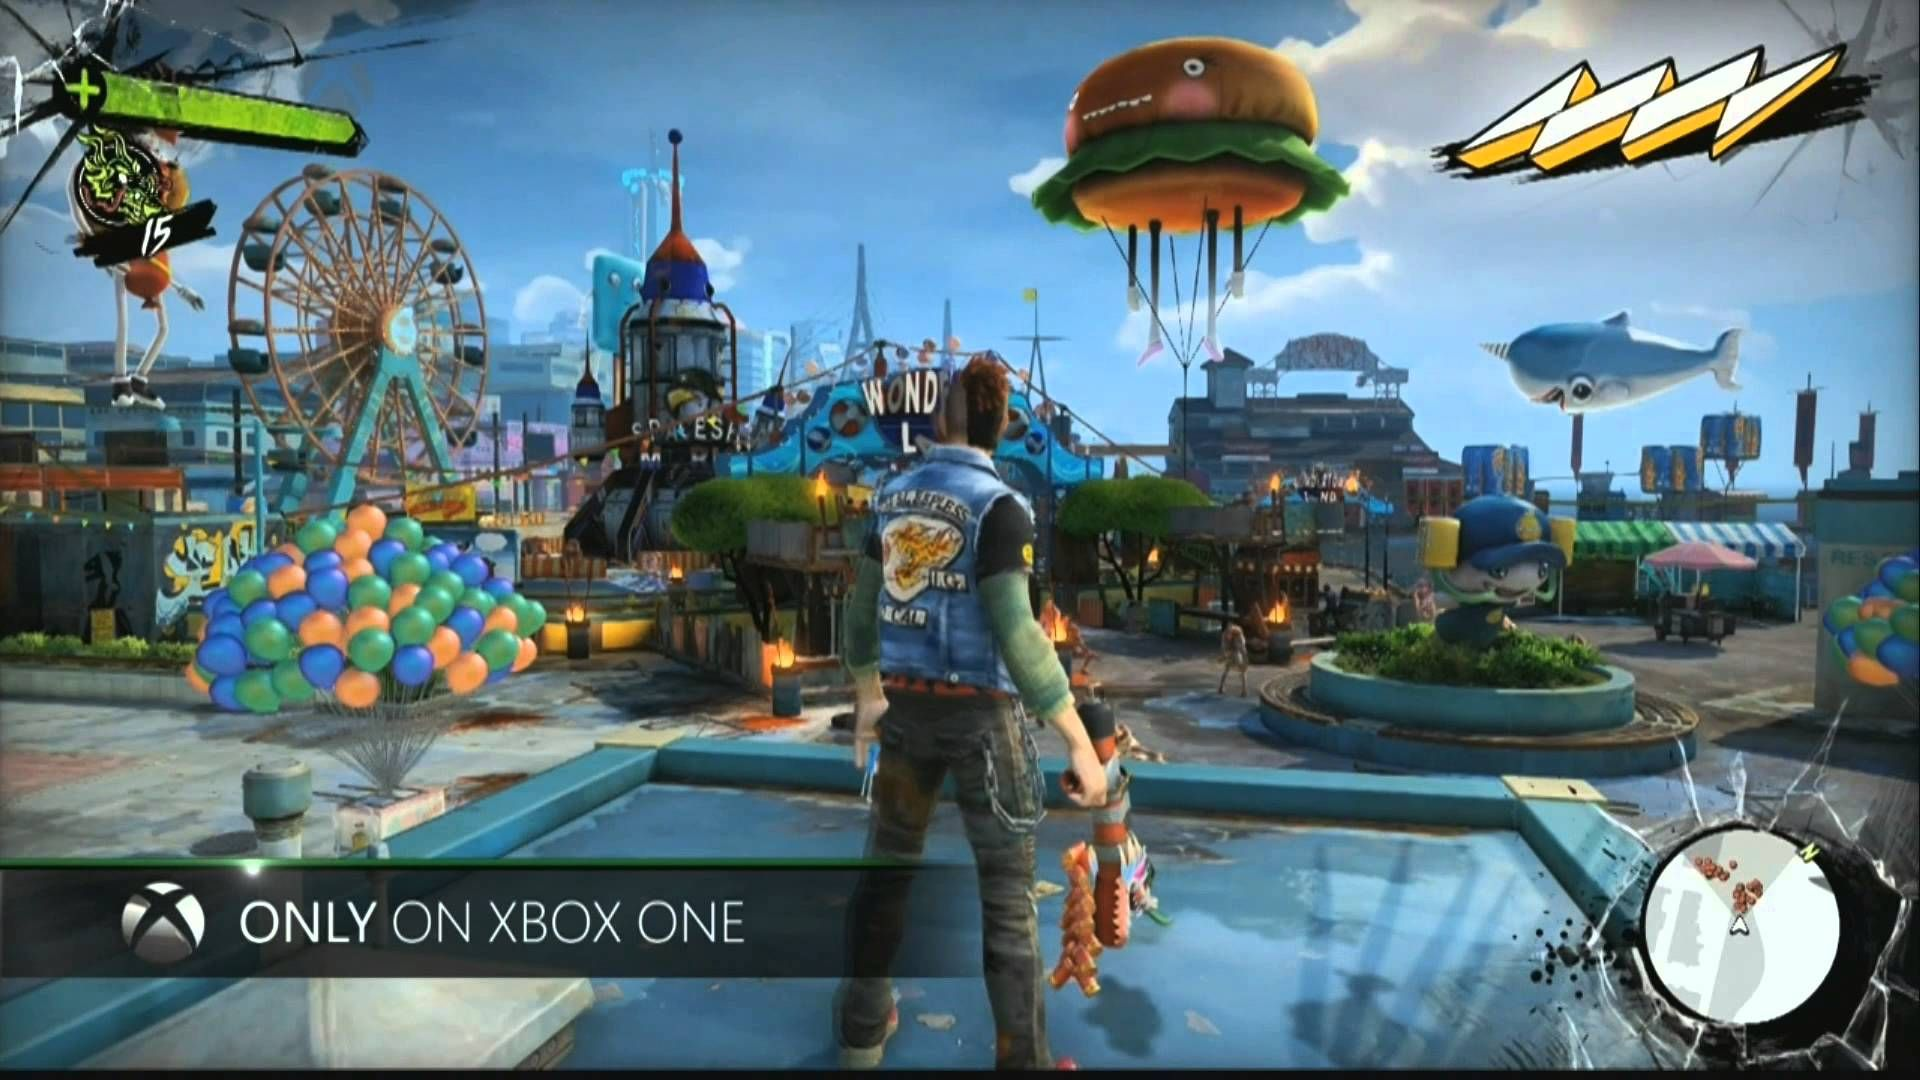 E3 Reveal! Sunset Overdrive!